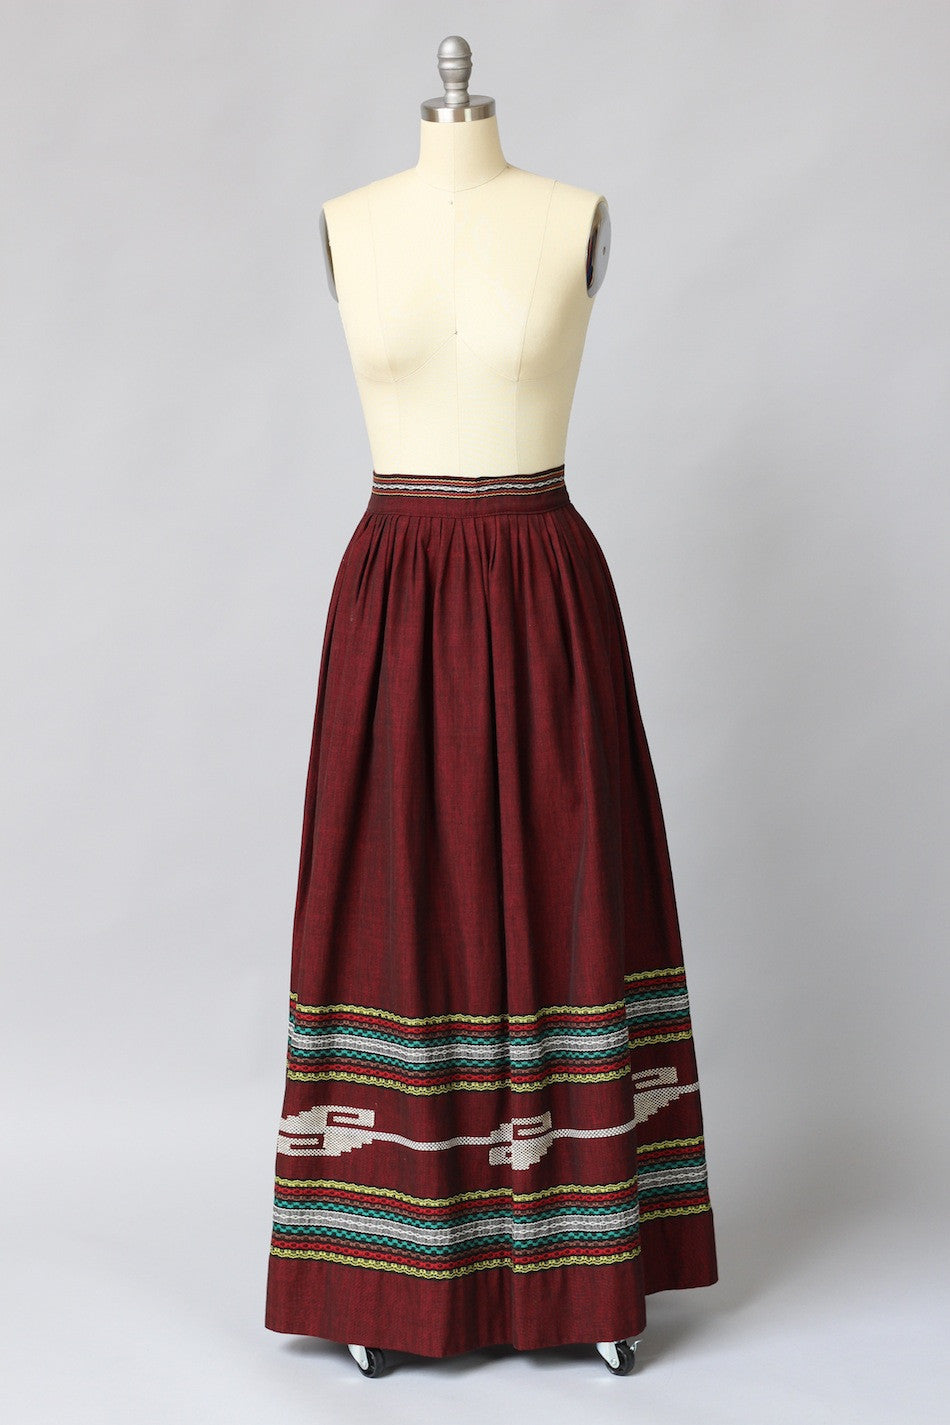 770cd11c0d 1950s Oaxacan Mexican Embroidered Maxi Skirt – The Vintage Net